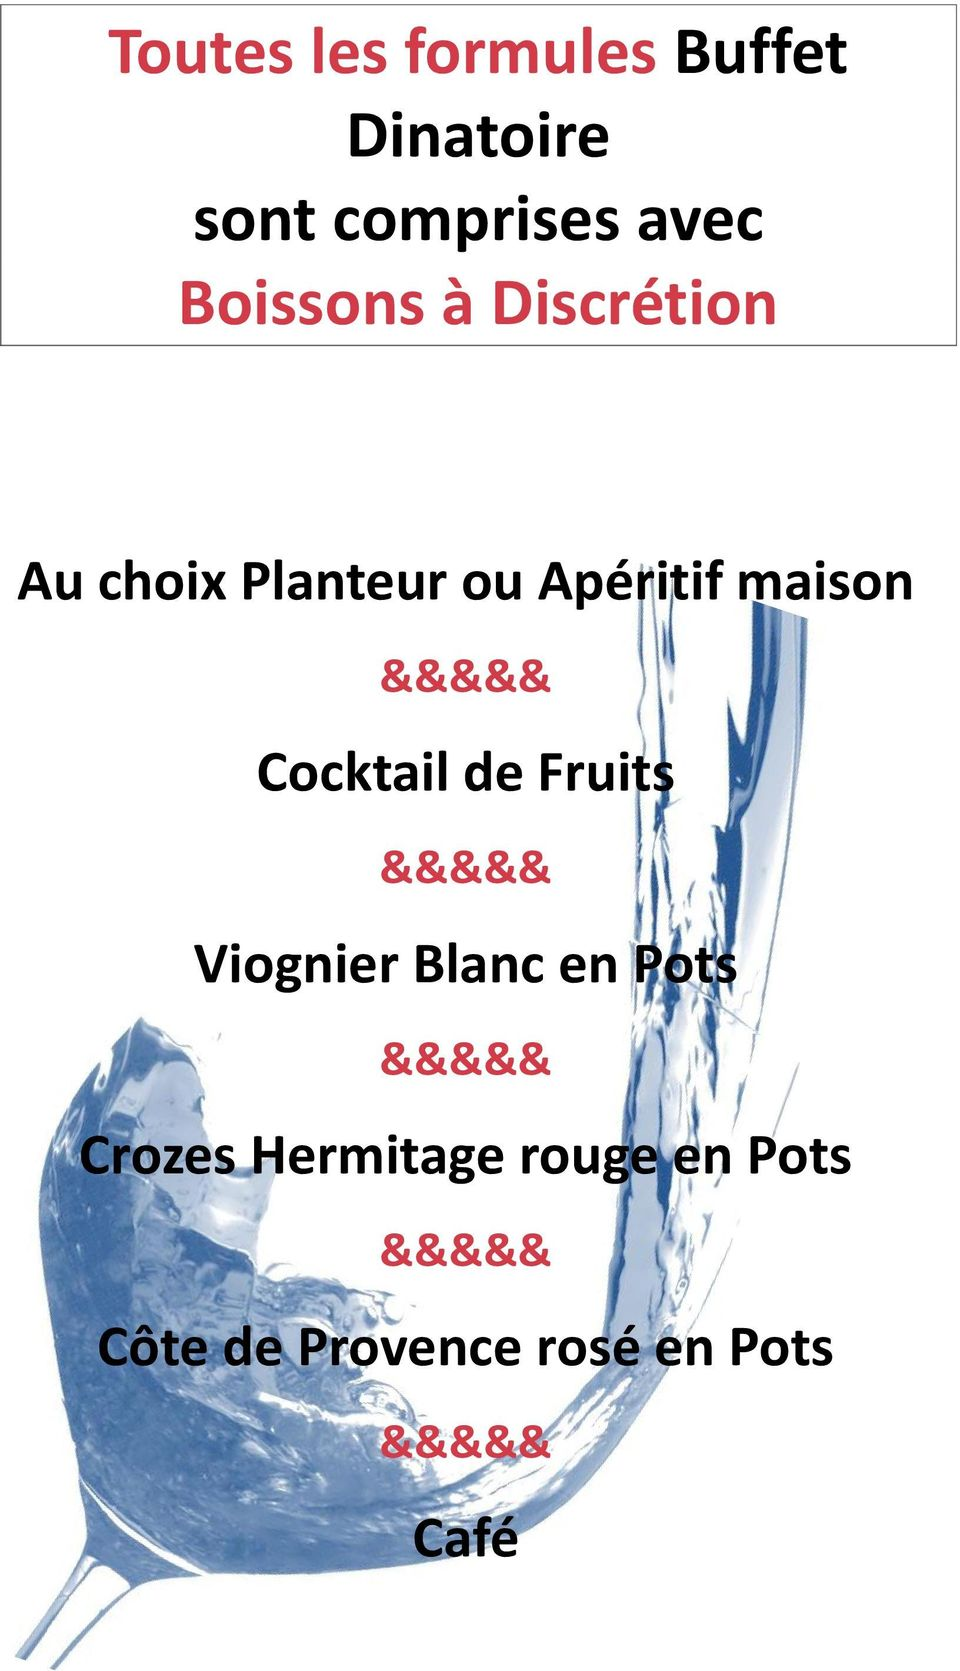 Apéritif maison Cocktail de Fruits Viognier Blanc en